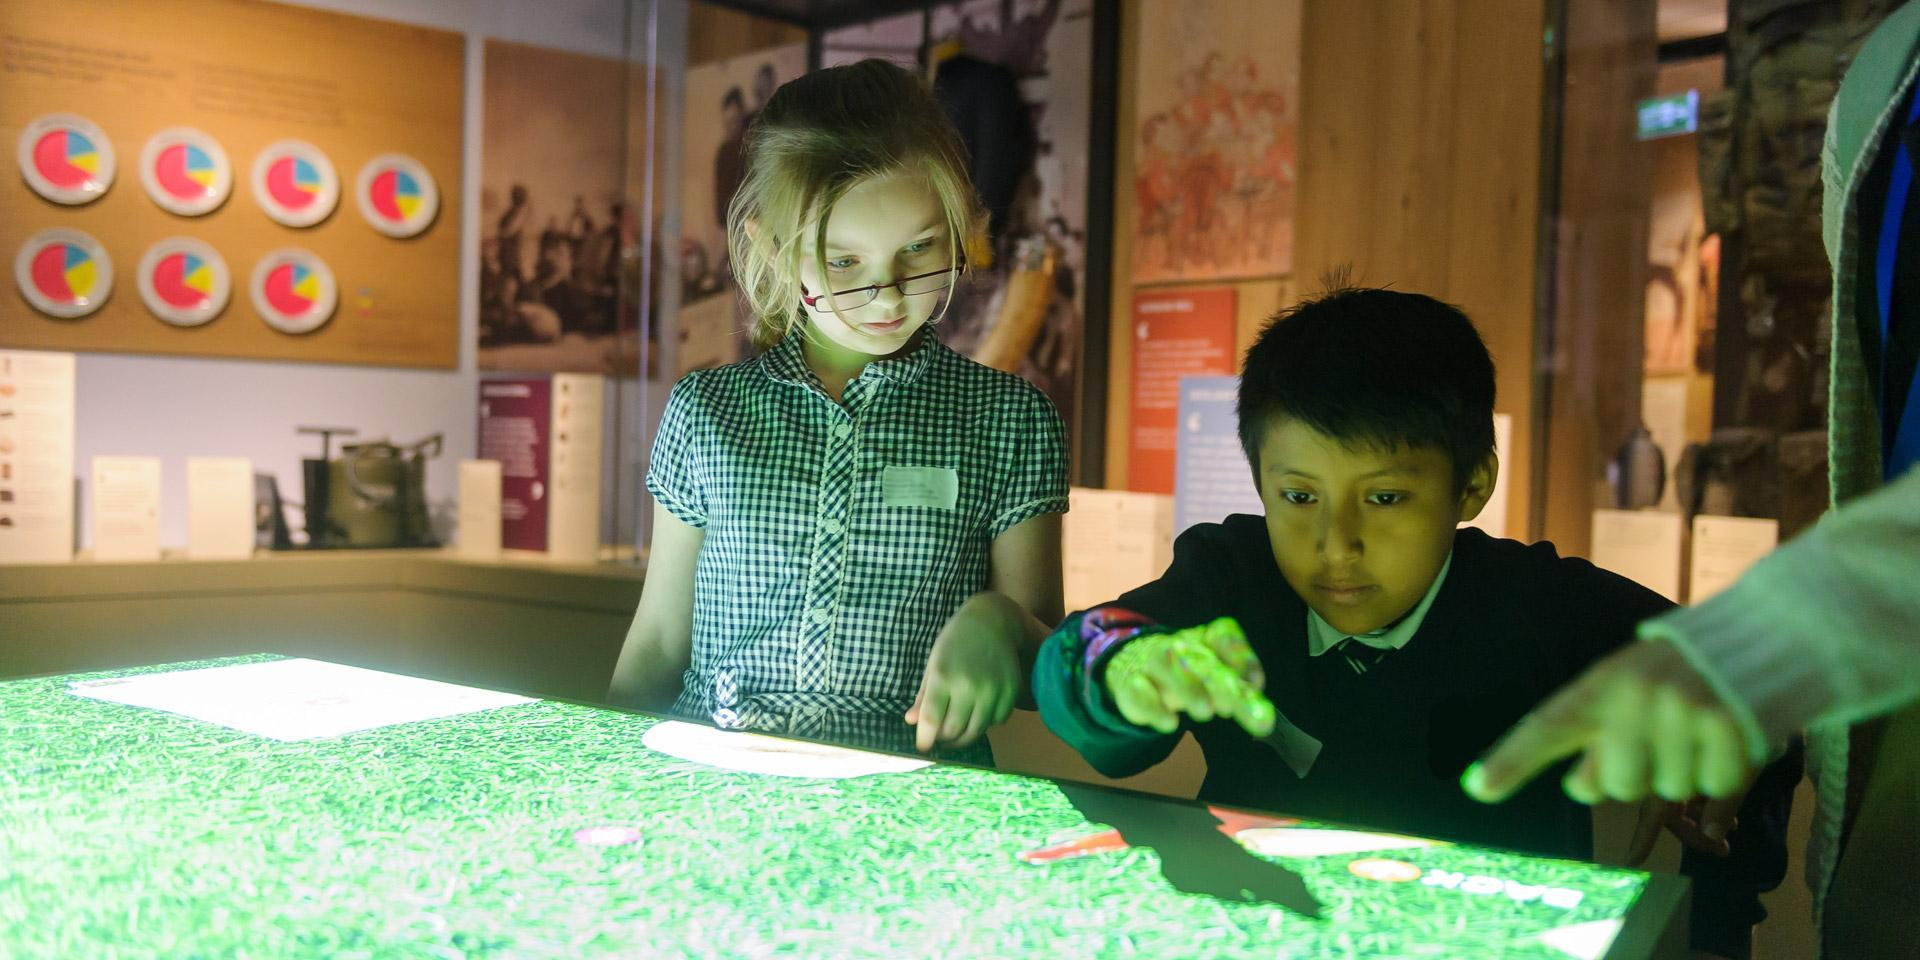 School children visiting Soldier gallery